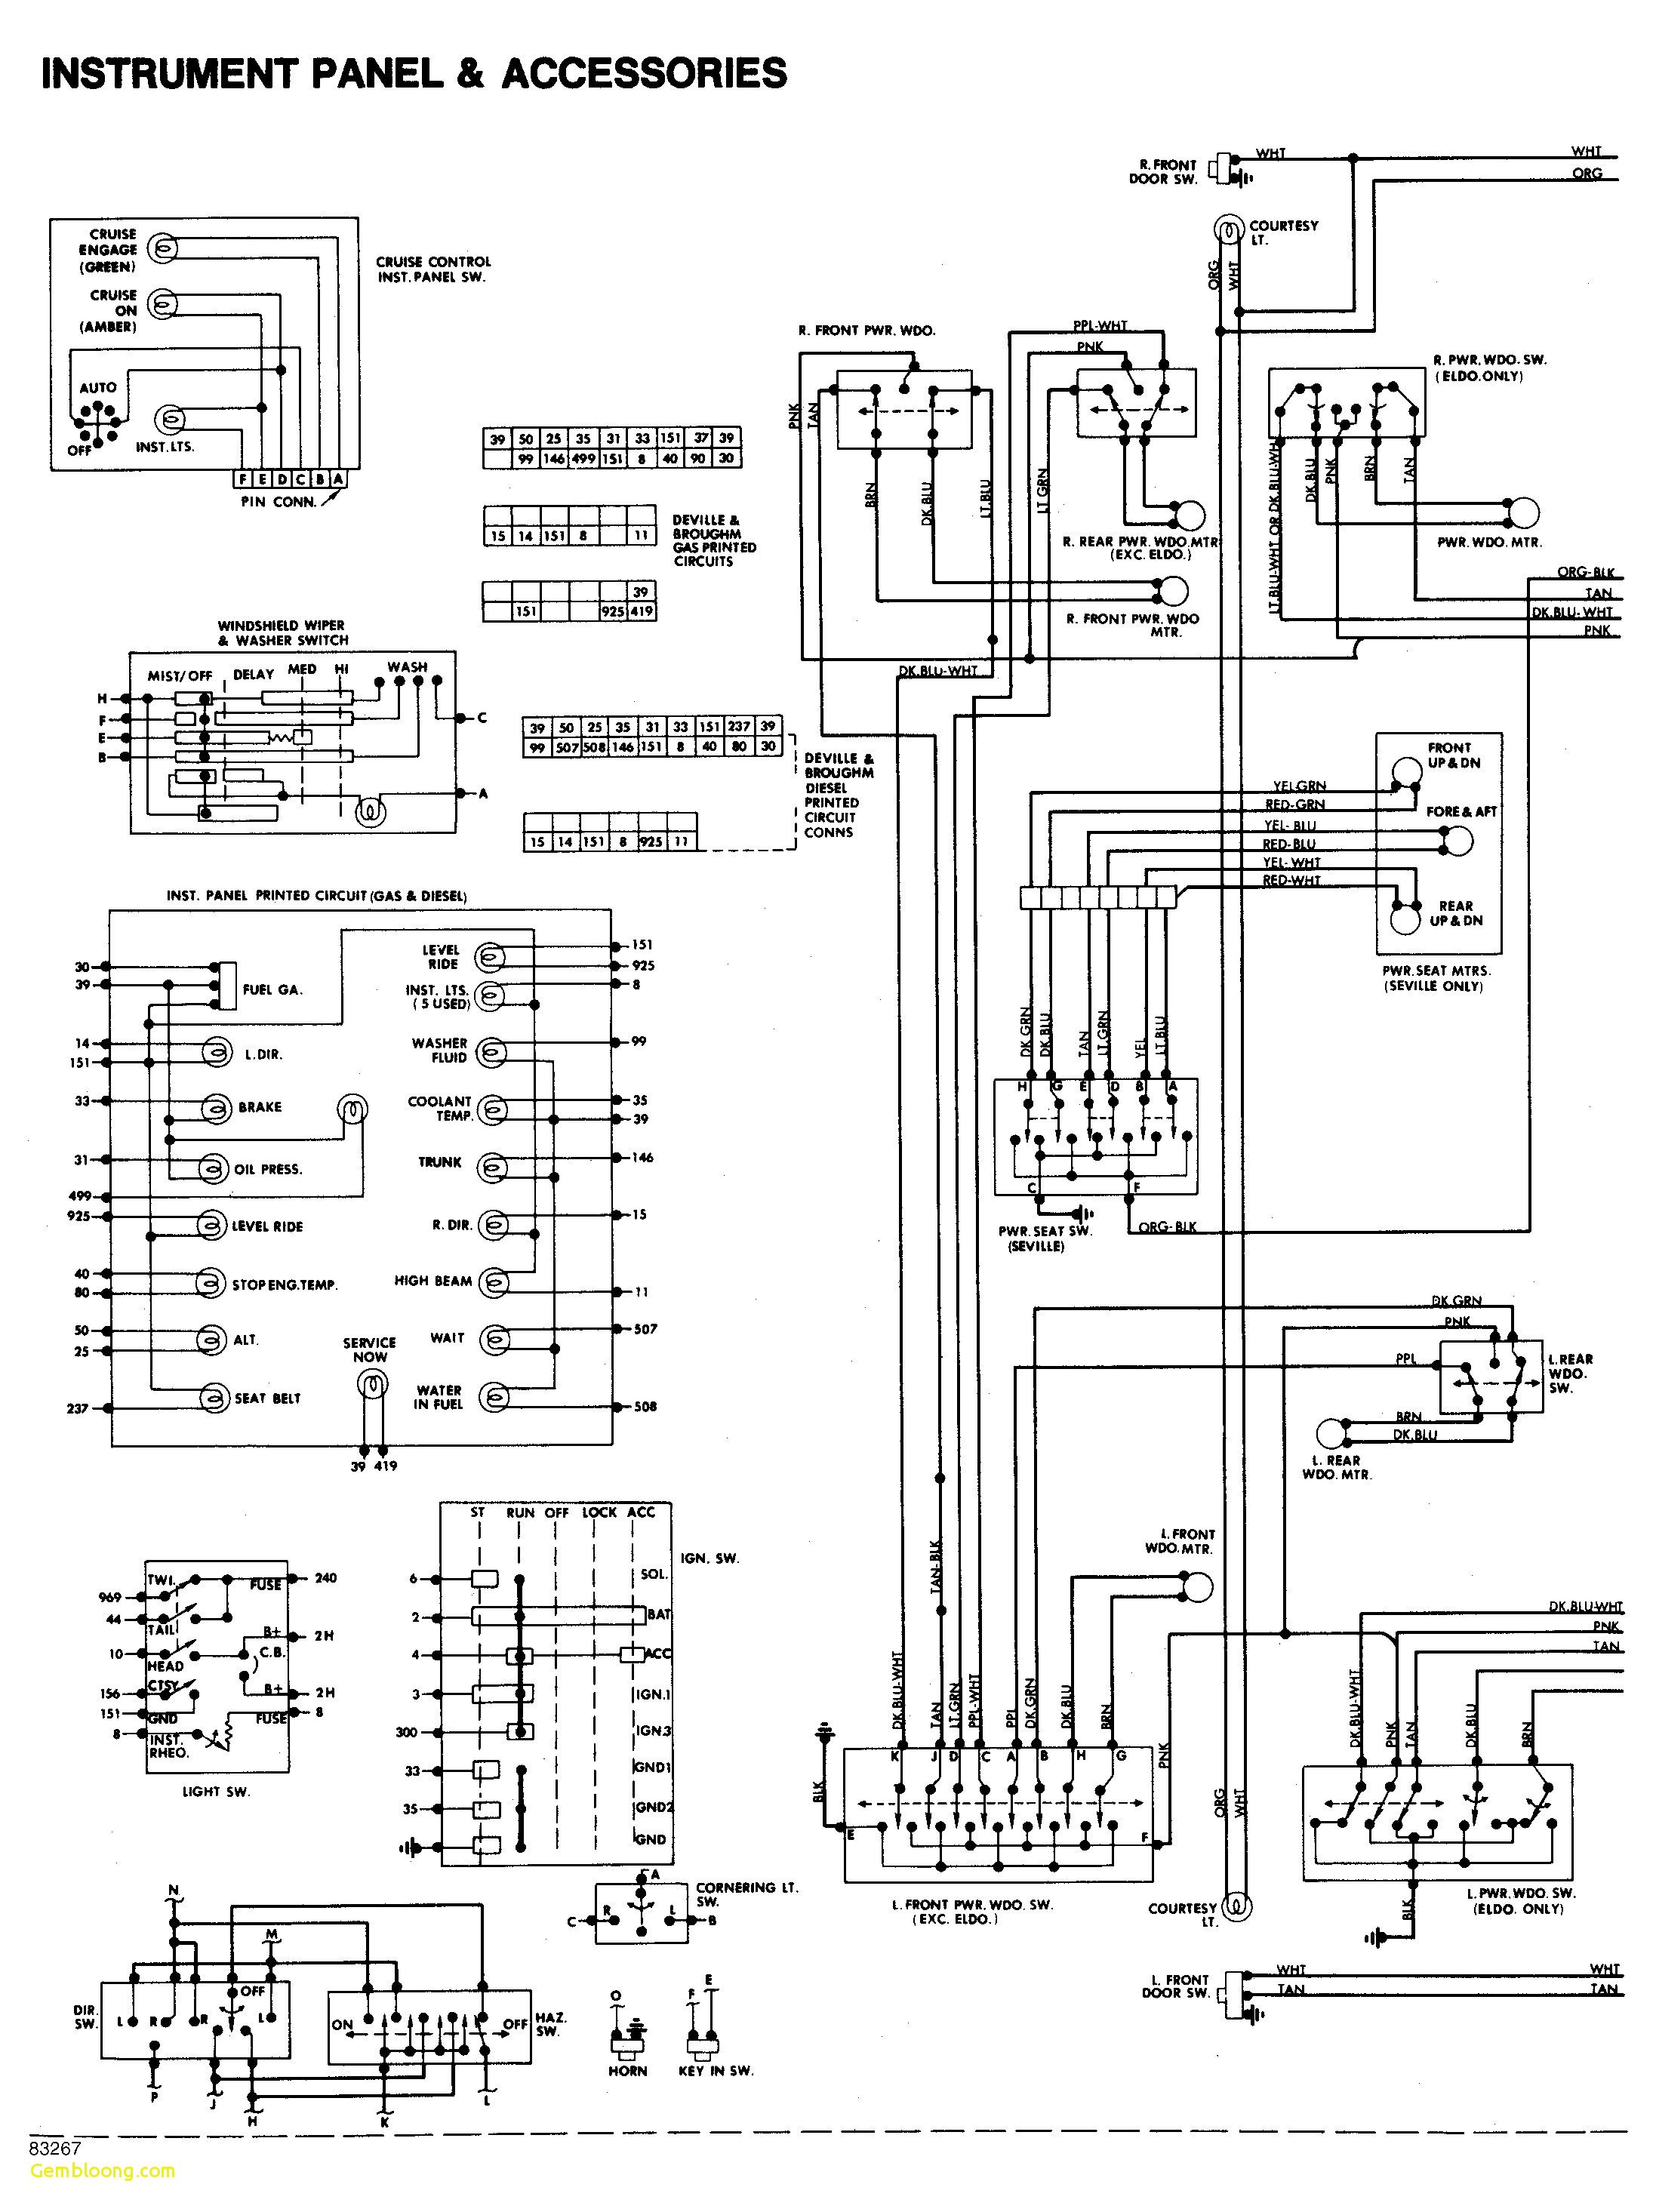 22 Stunning Free Vehicle Wiring Diagrams Desain